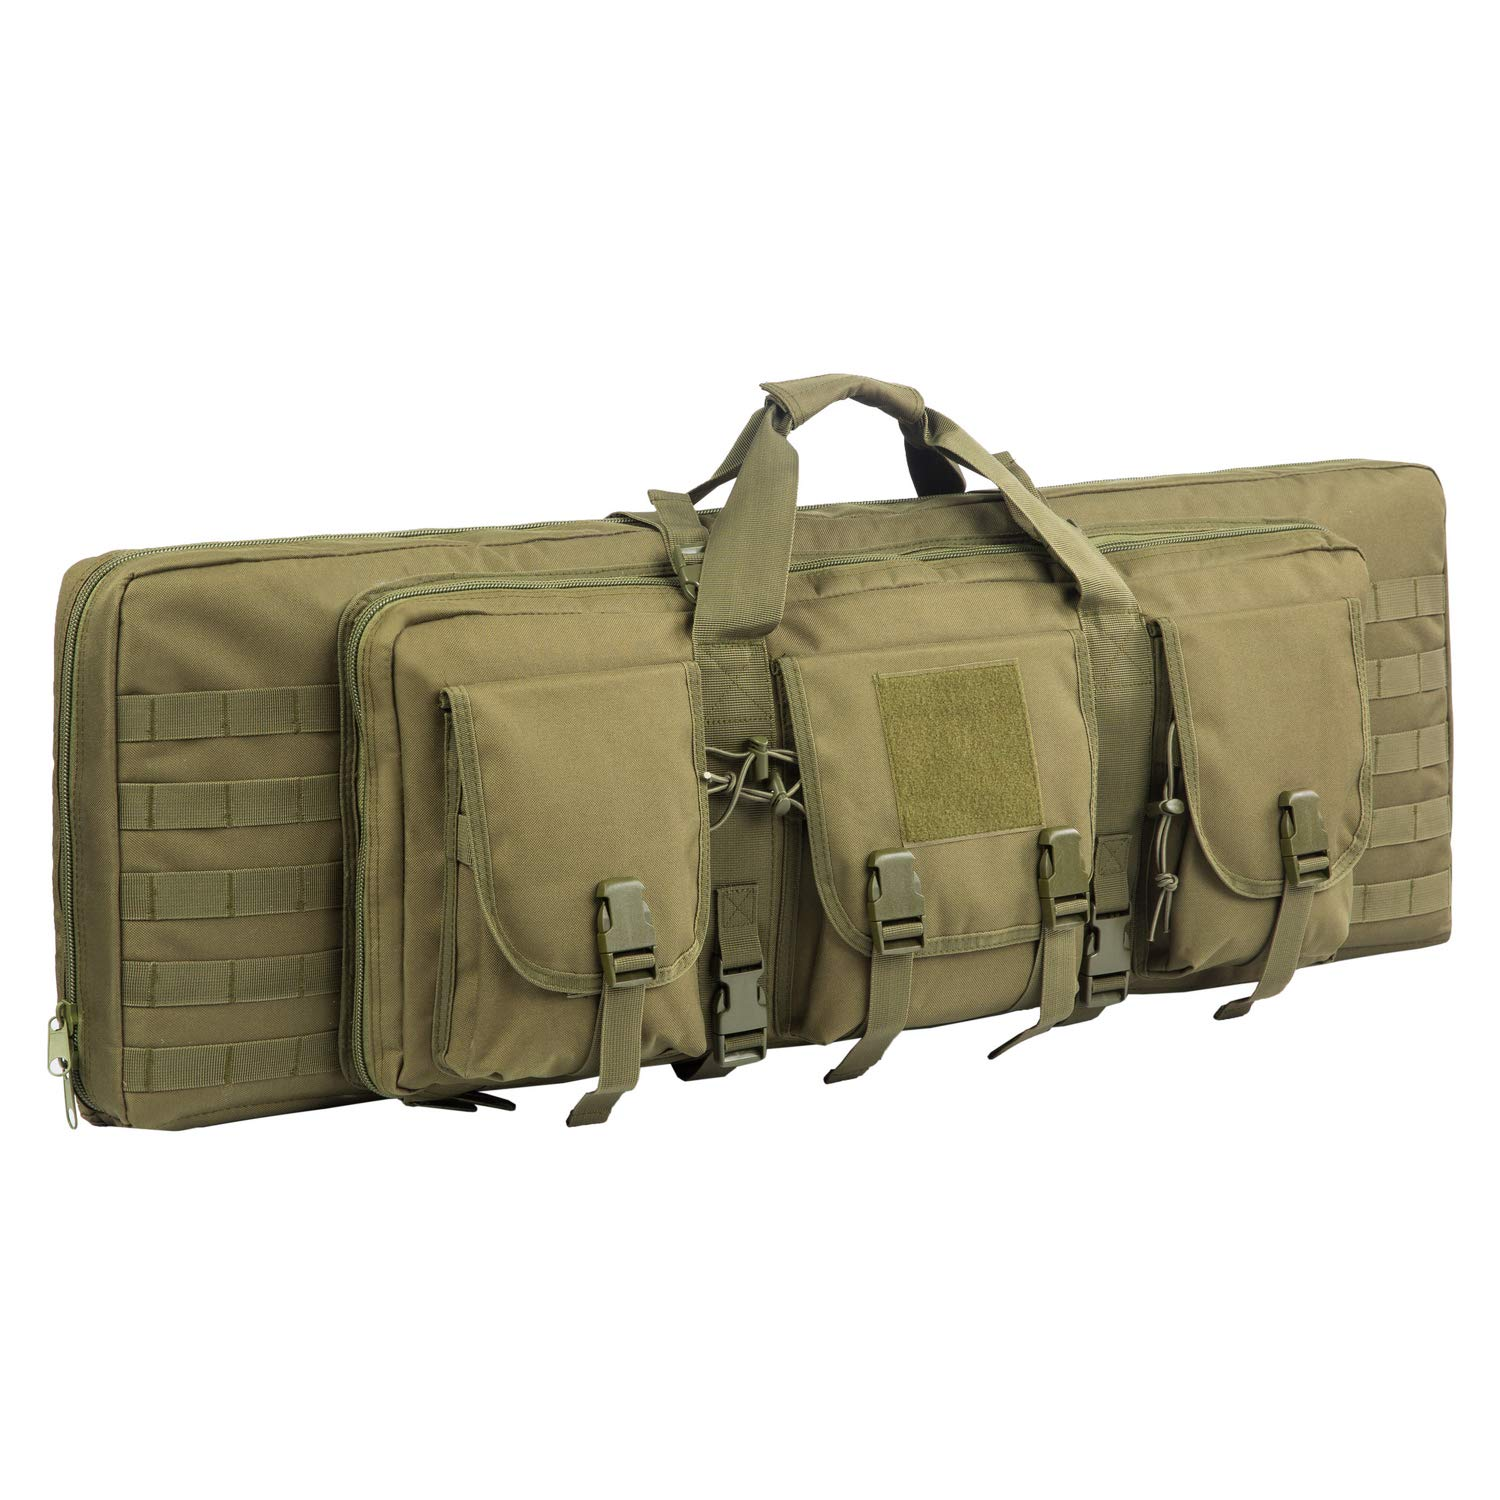 AK47/AR16 Tactical Rifle Case Double Carbine Bag Outdoor Molle Deluxe Double Rifle Gun Bag Padded Long Gun Case & Rifle Storage Backpack(2 Sizes and 6 Colors to chooese from) (O.D. Green, 42inch) by XWLSPORT